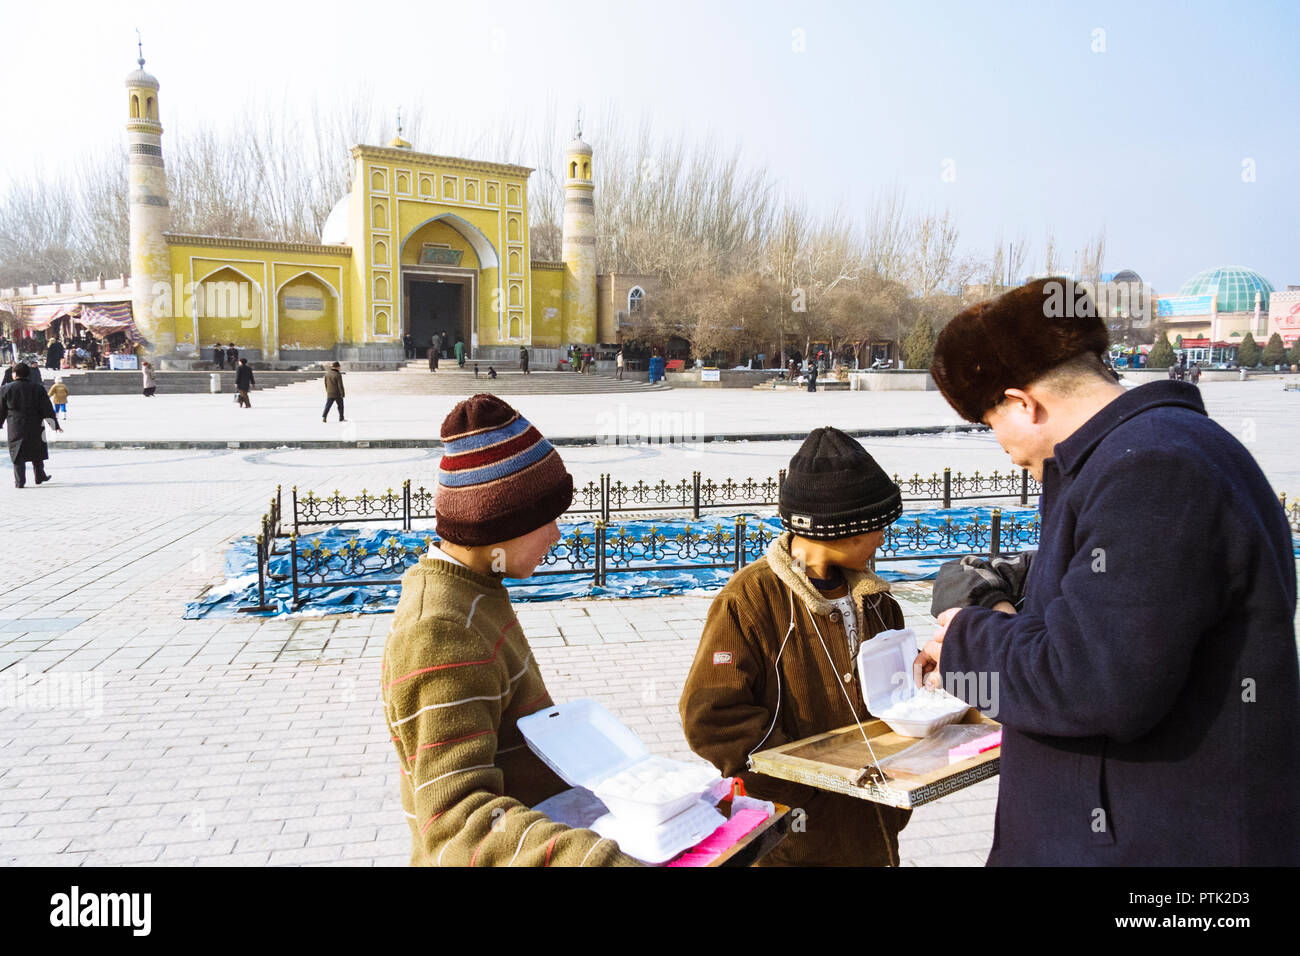 Kashgar, Xinjiang, China : Two Uyghur children sell sweets opposite the yellow-tiled Id Kah Mosque (1442), the spiritual and physical heart of the cit - Stock Image